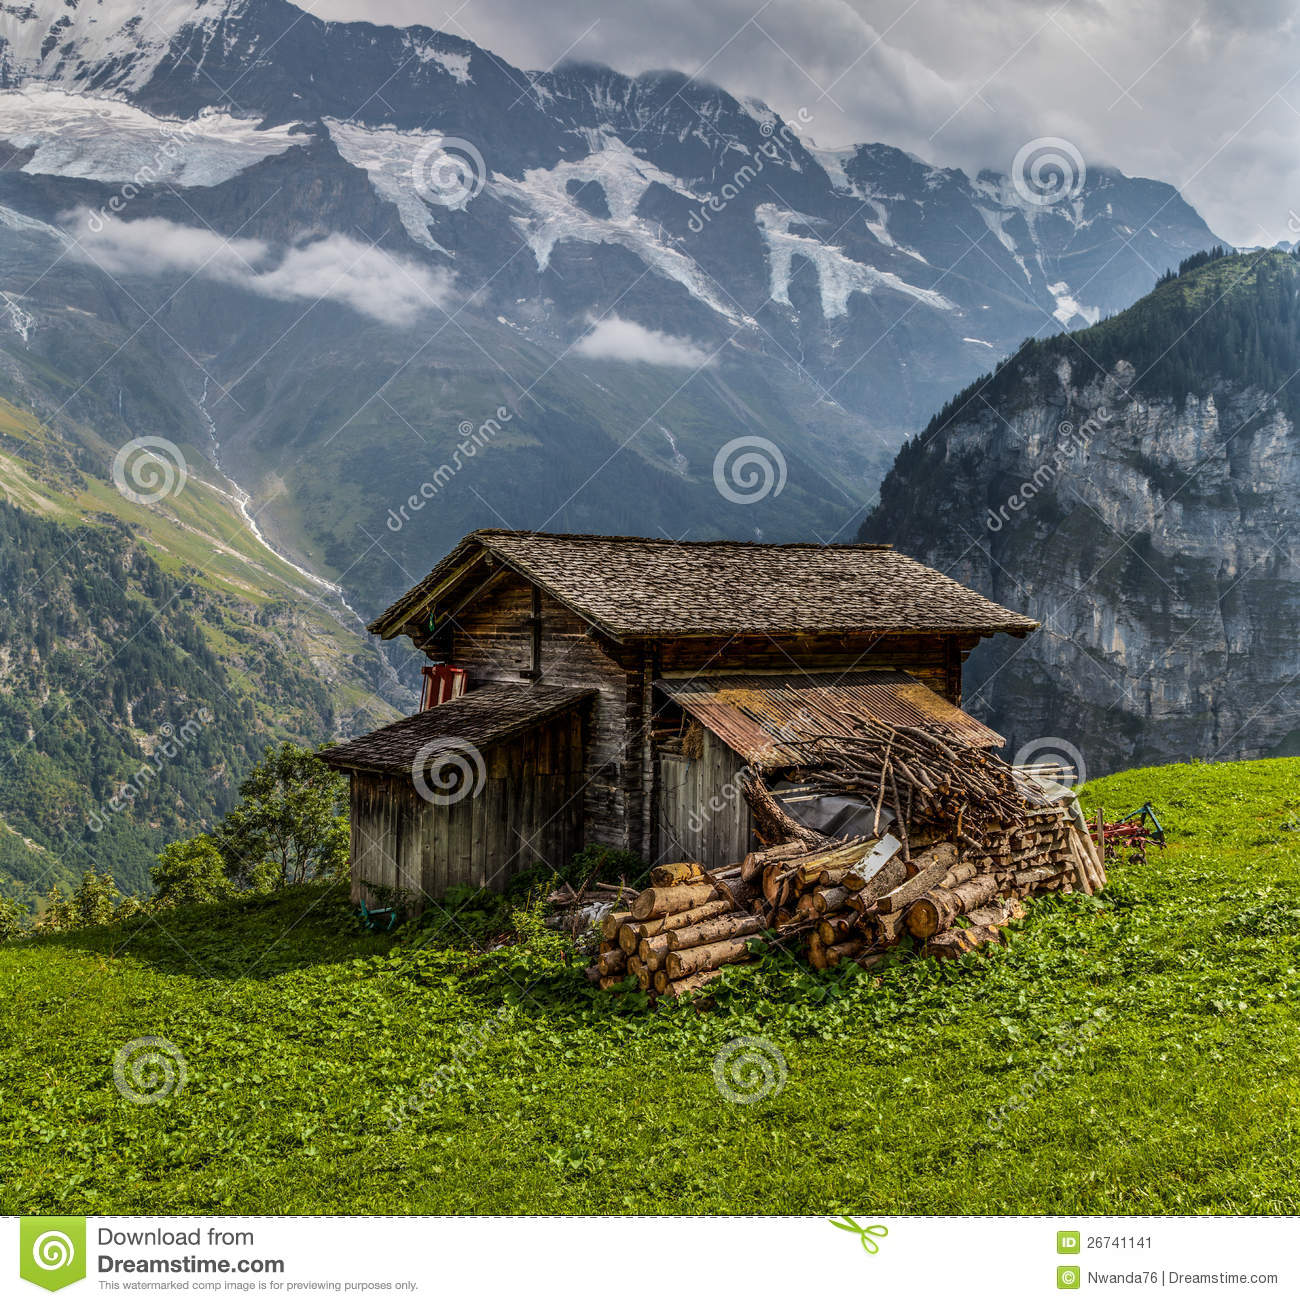 Wooden Hut In The Bernese Alps Stock Image - Image: 26741141